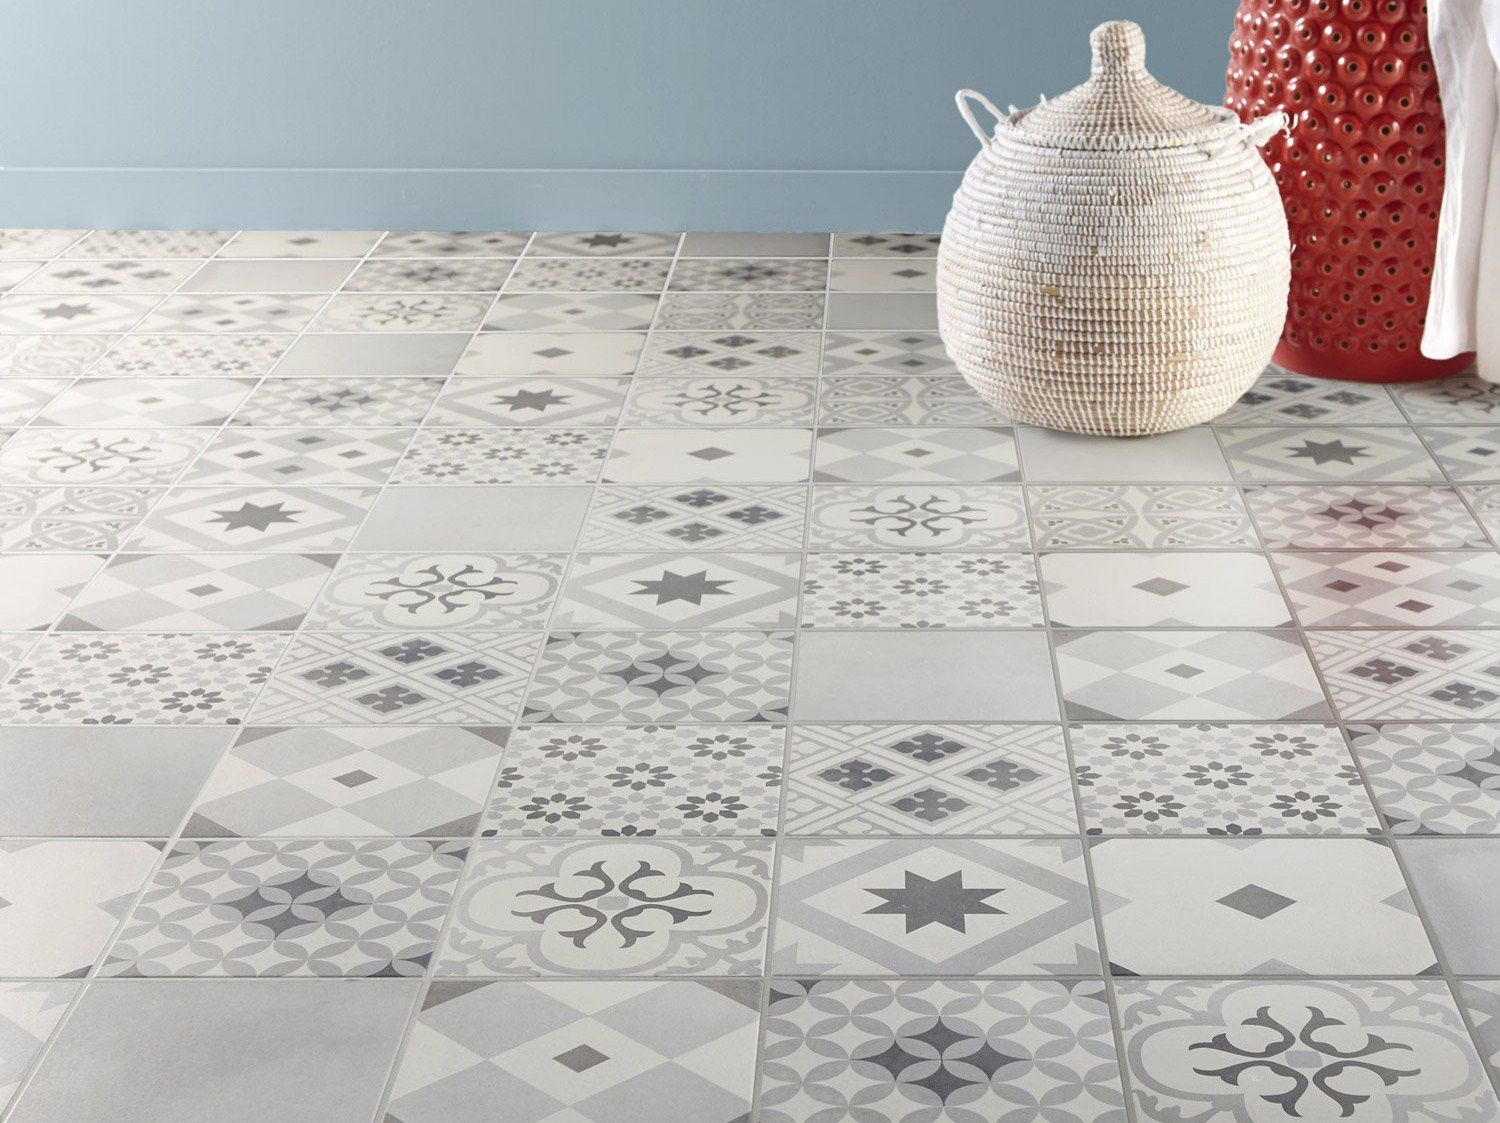 Carrelage design carrelage carreaux de ciment castorama moderne design po - Castorama carreaux de ciment ...